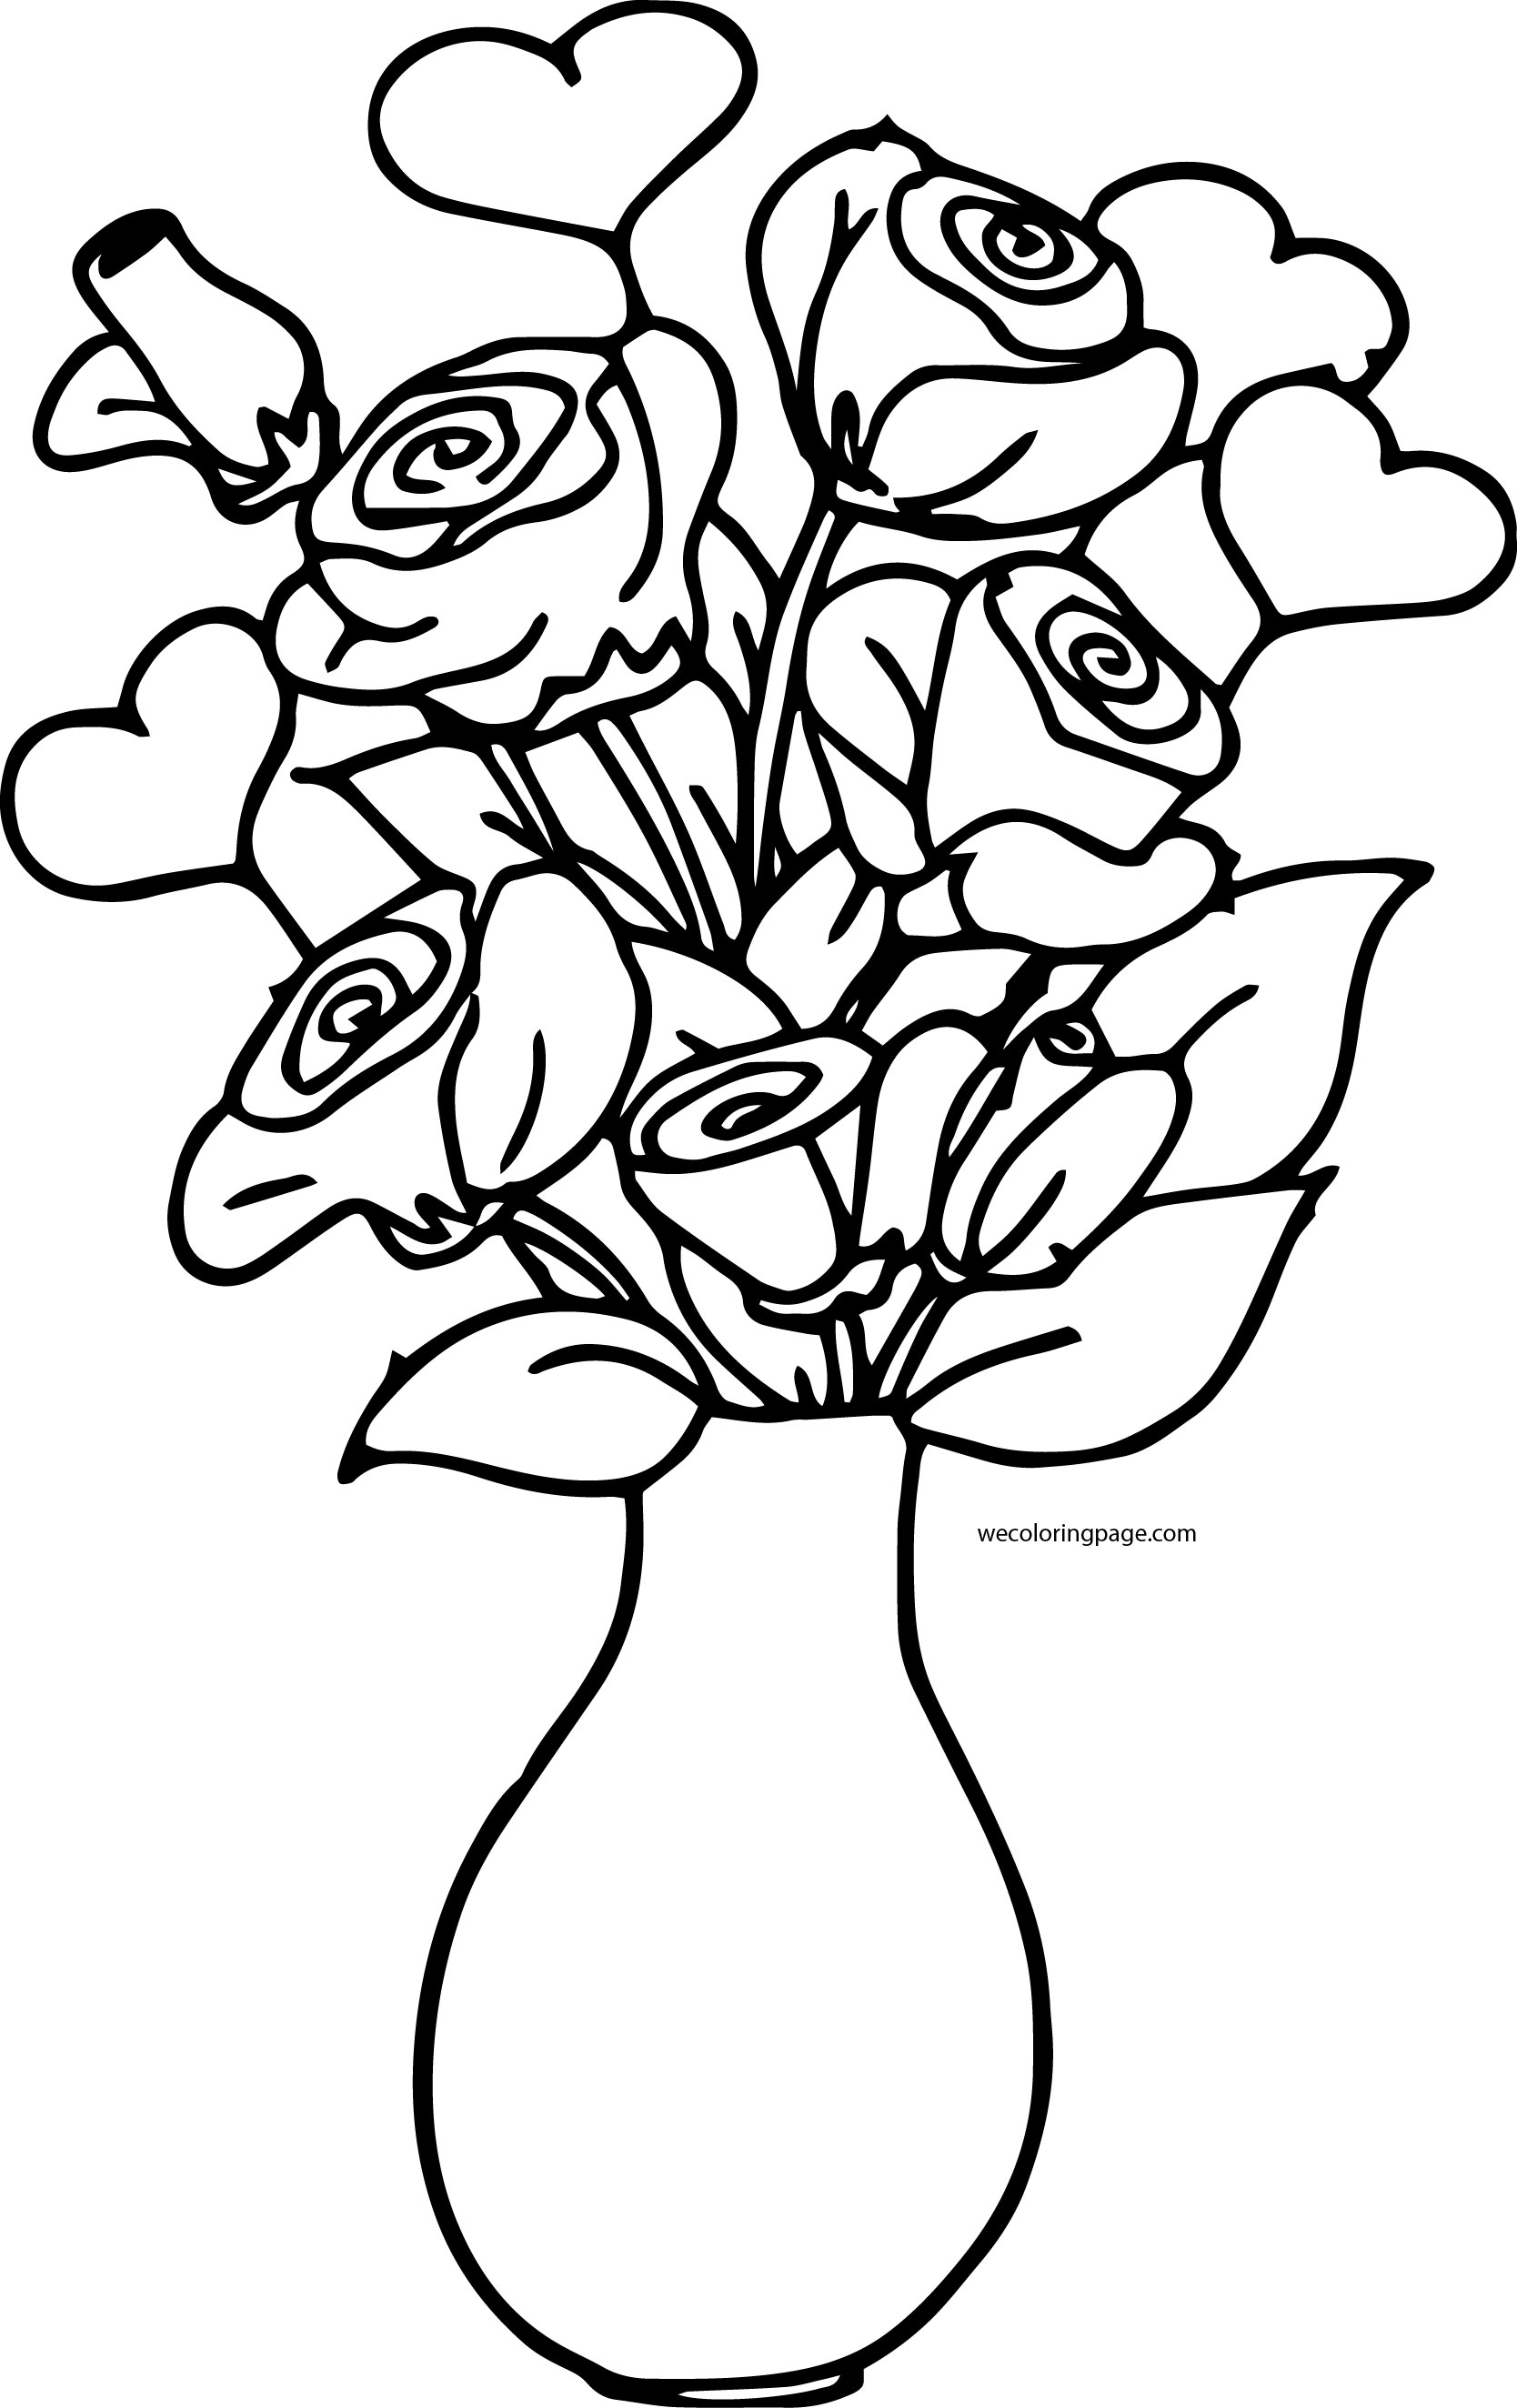 Rosen In Vase Rose Bucket In Vase Coloring Page Wecoloringpage